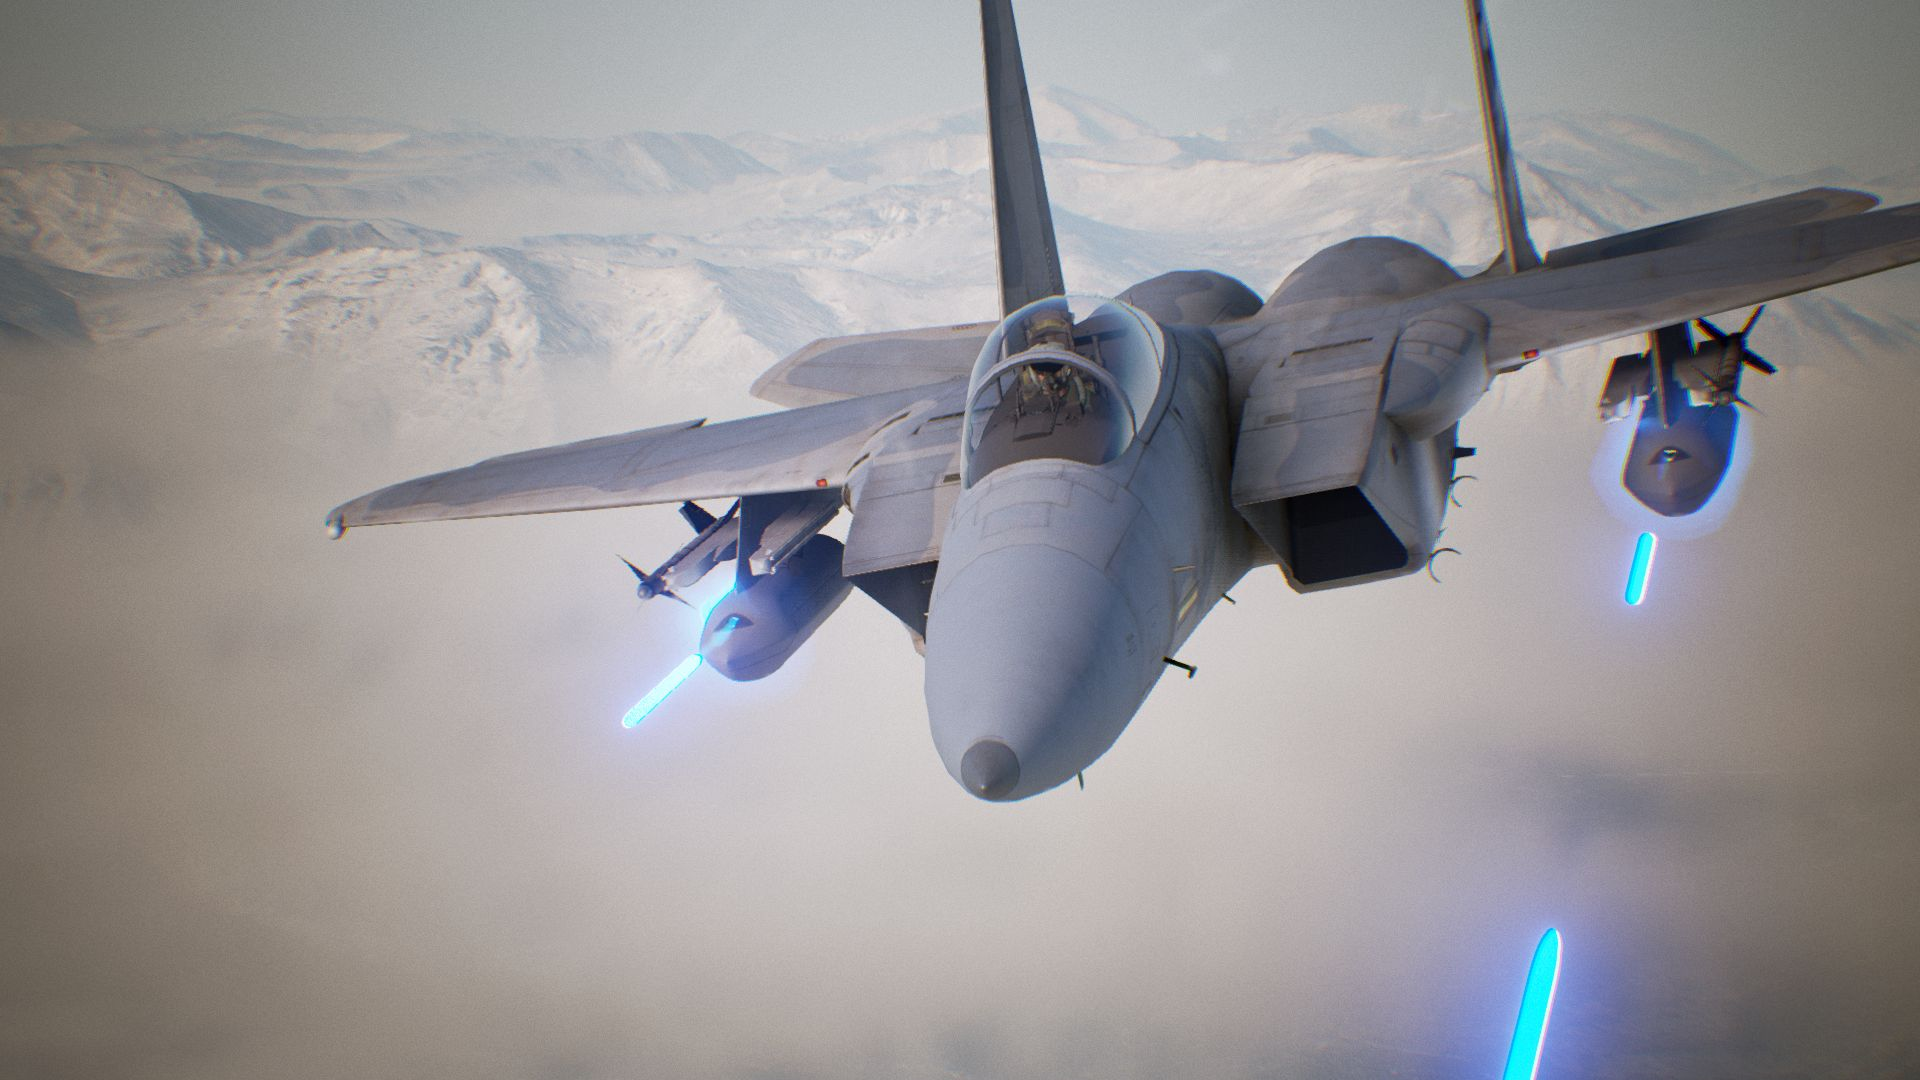 Bandai Namco Teases Ace Combat 7 Game On PlayStation VR